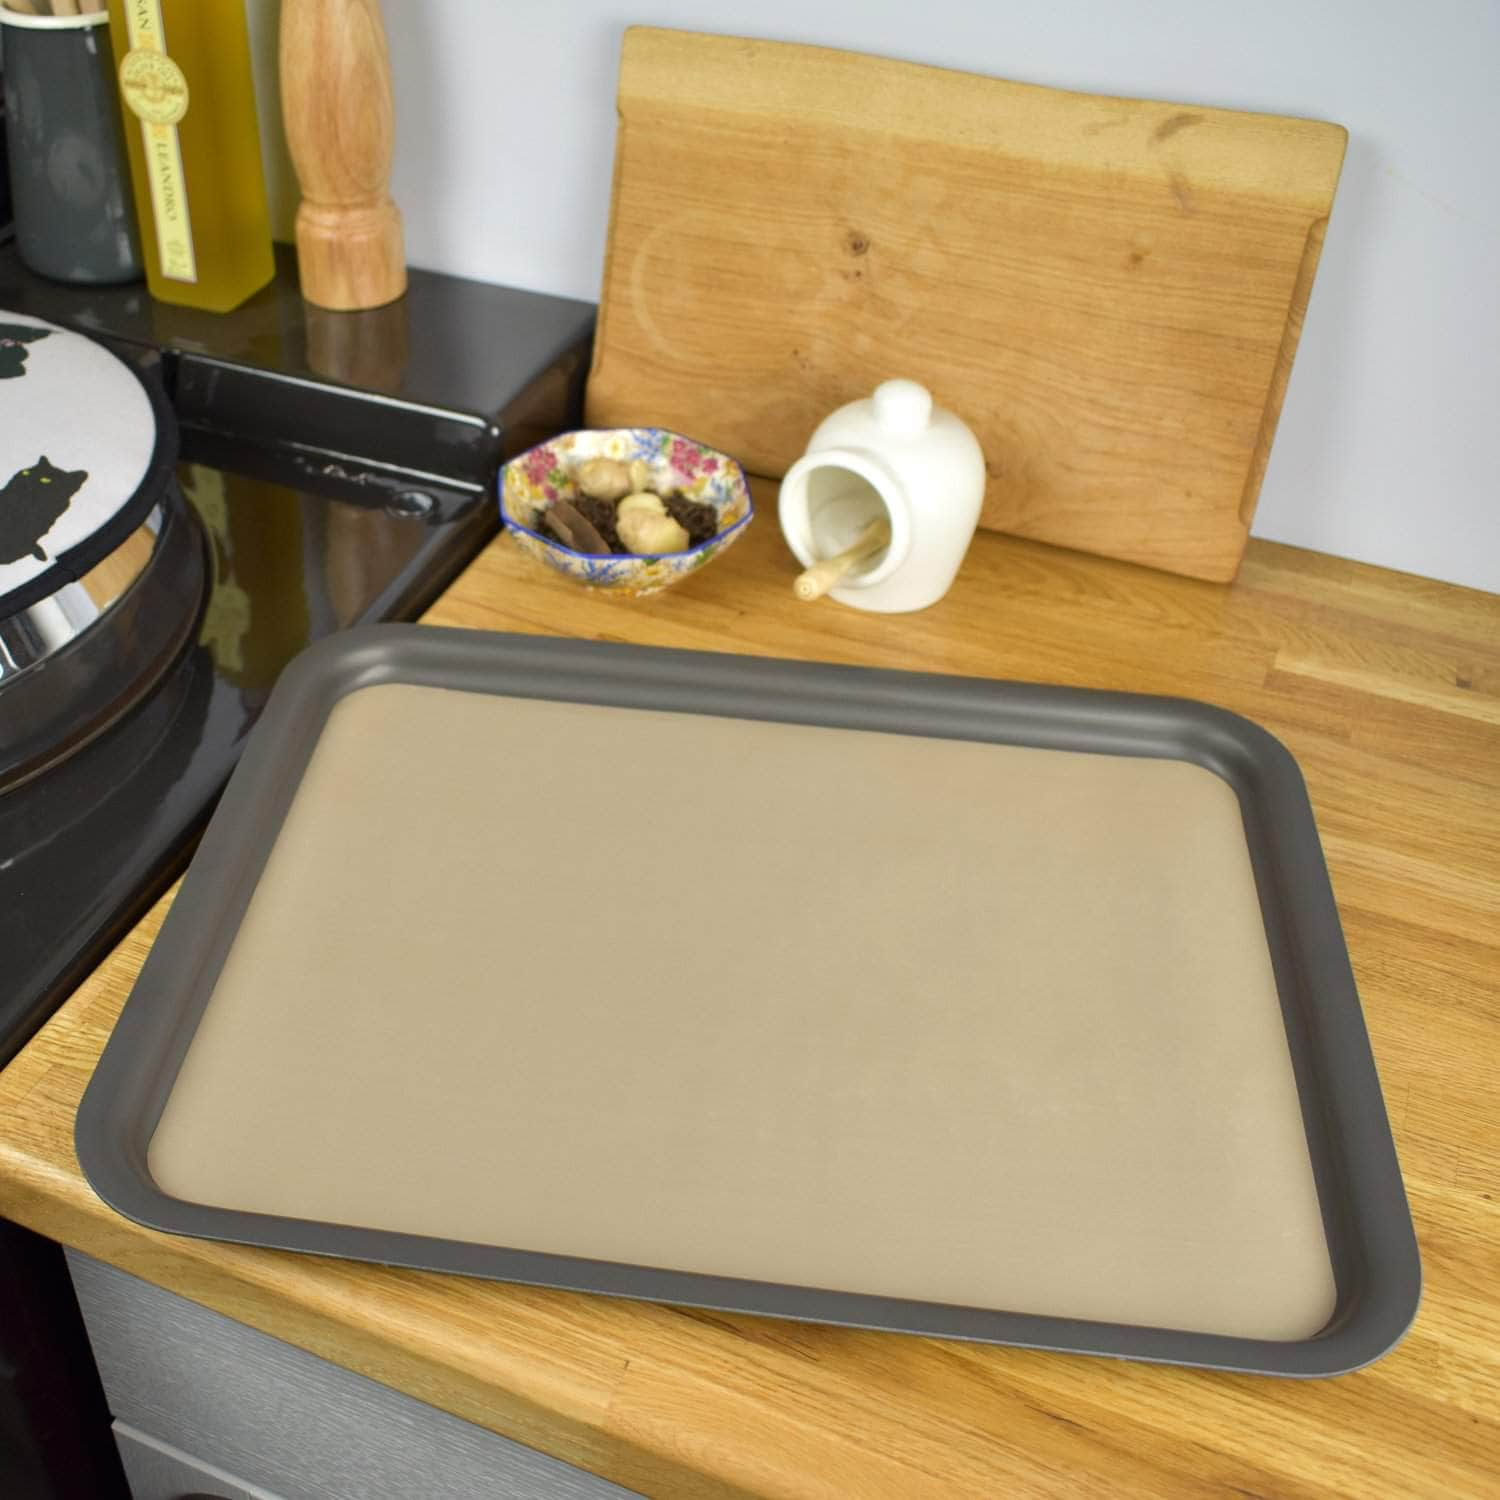 Non-stick liner for 'full oven' size baking tray or cold shelf